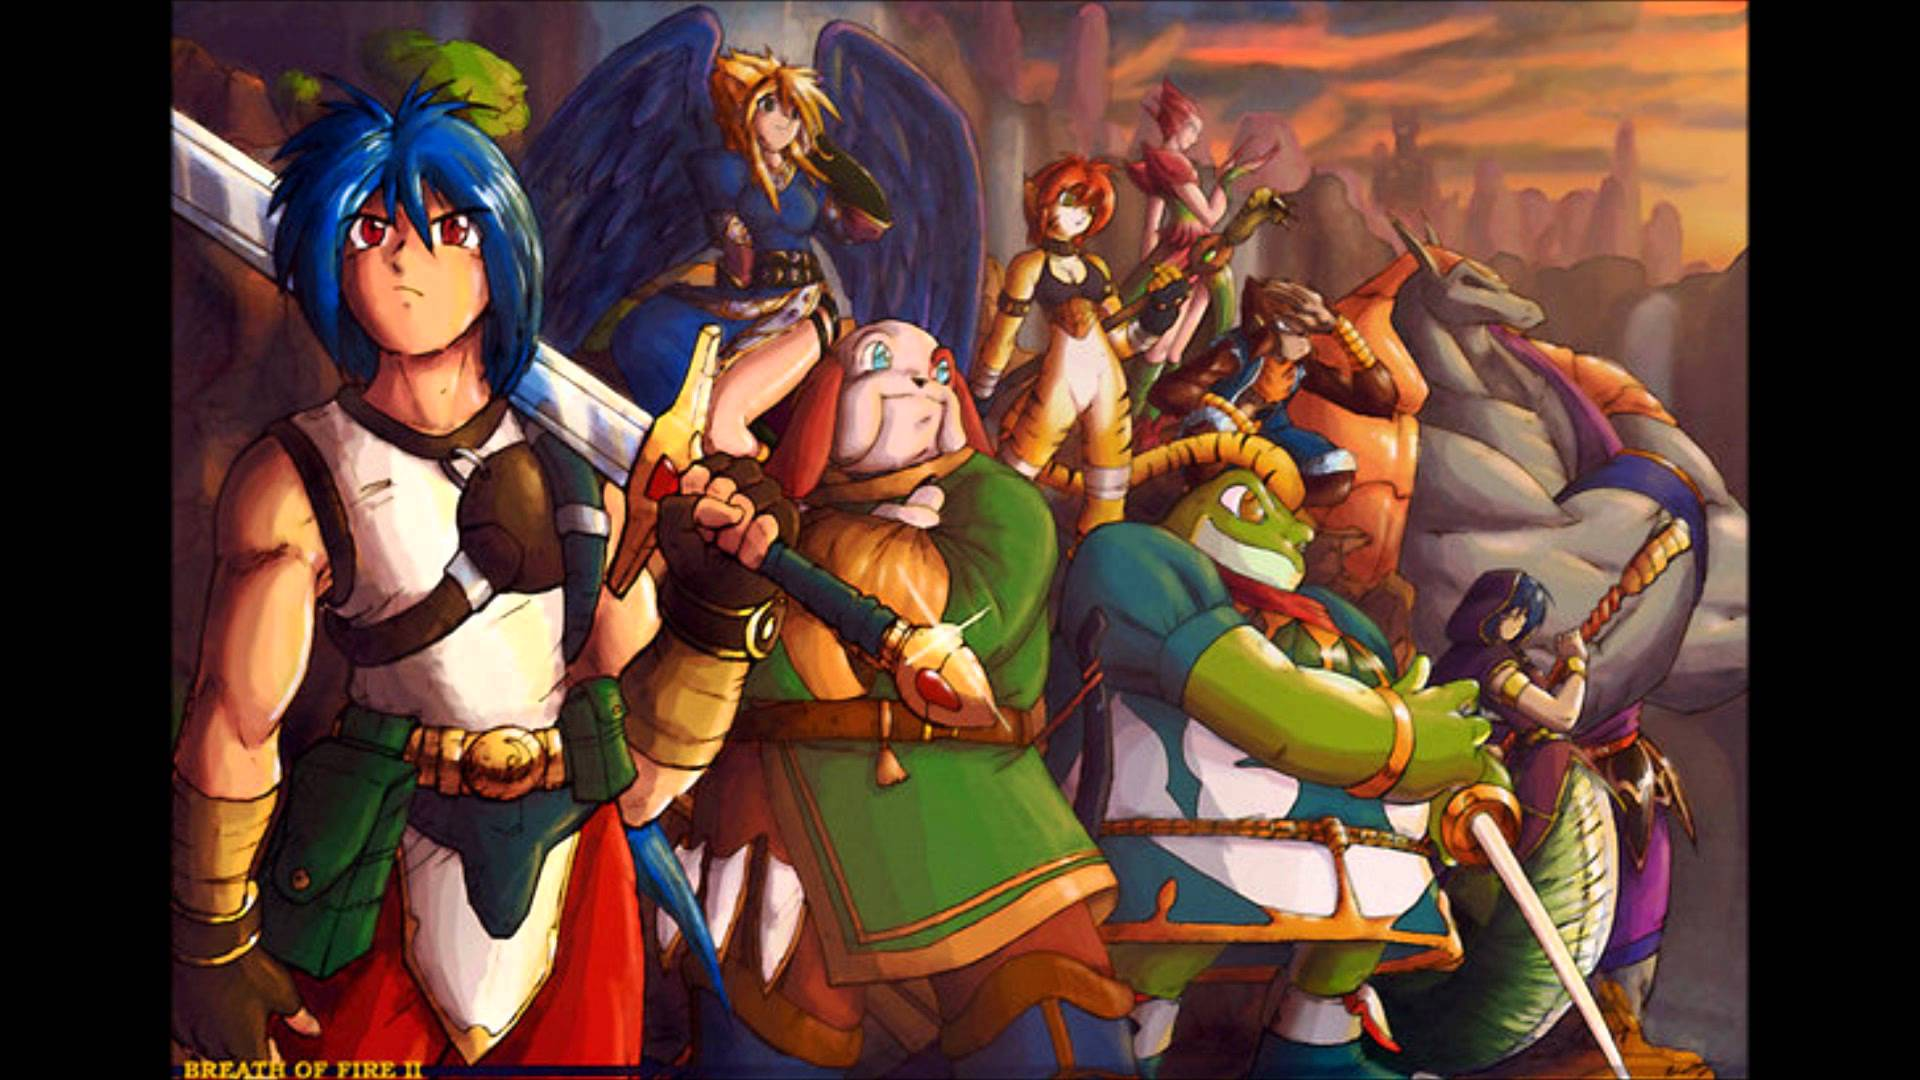 Breath Of Fire II Backgrounds, Compatible - PC, Mobile, Gadgets| 1920x1080 px